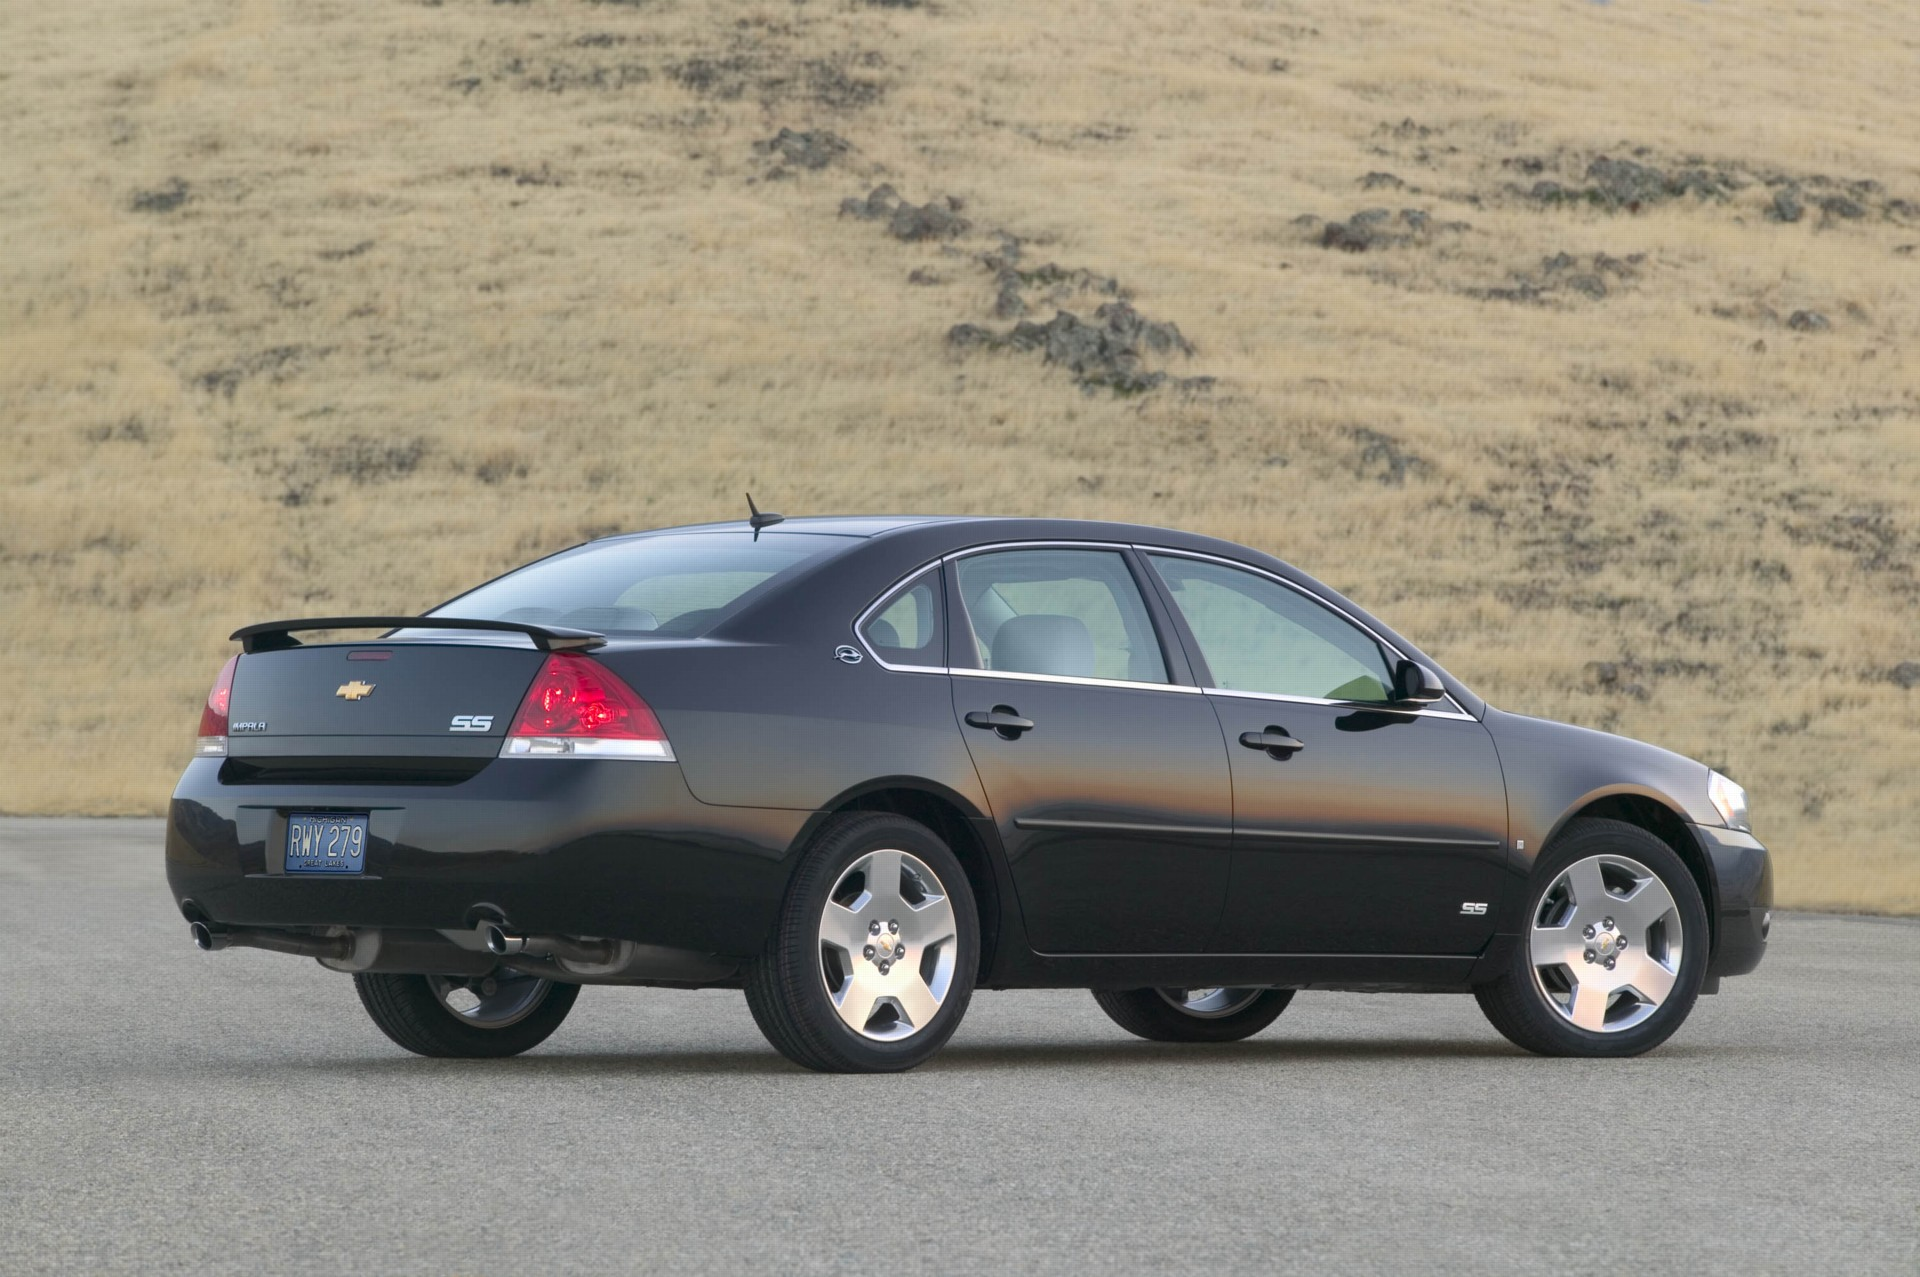 2007 Chevrolet Impala History, Pictures, Value, Auction Sales, Research and News